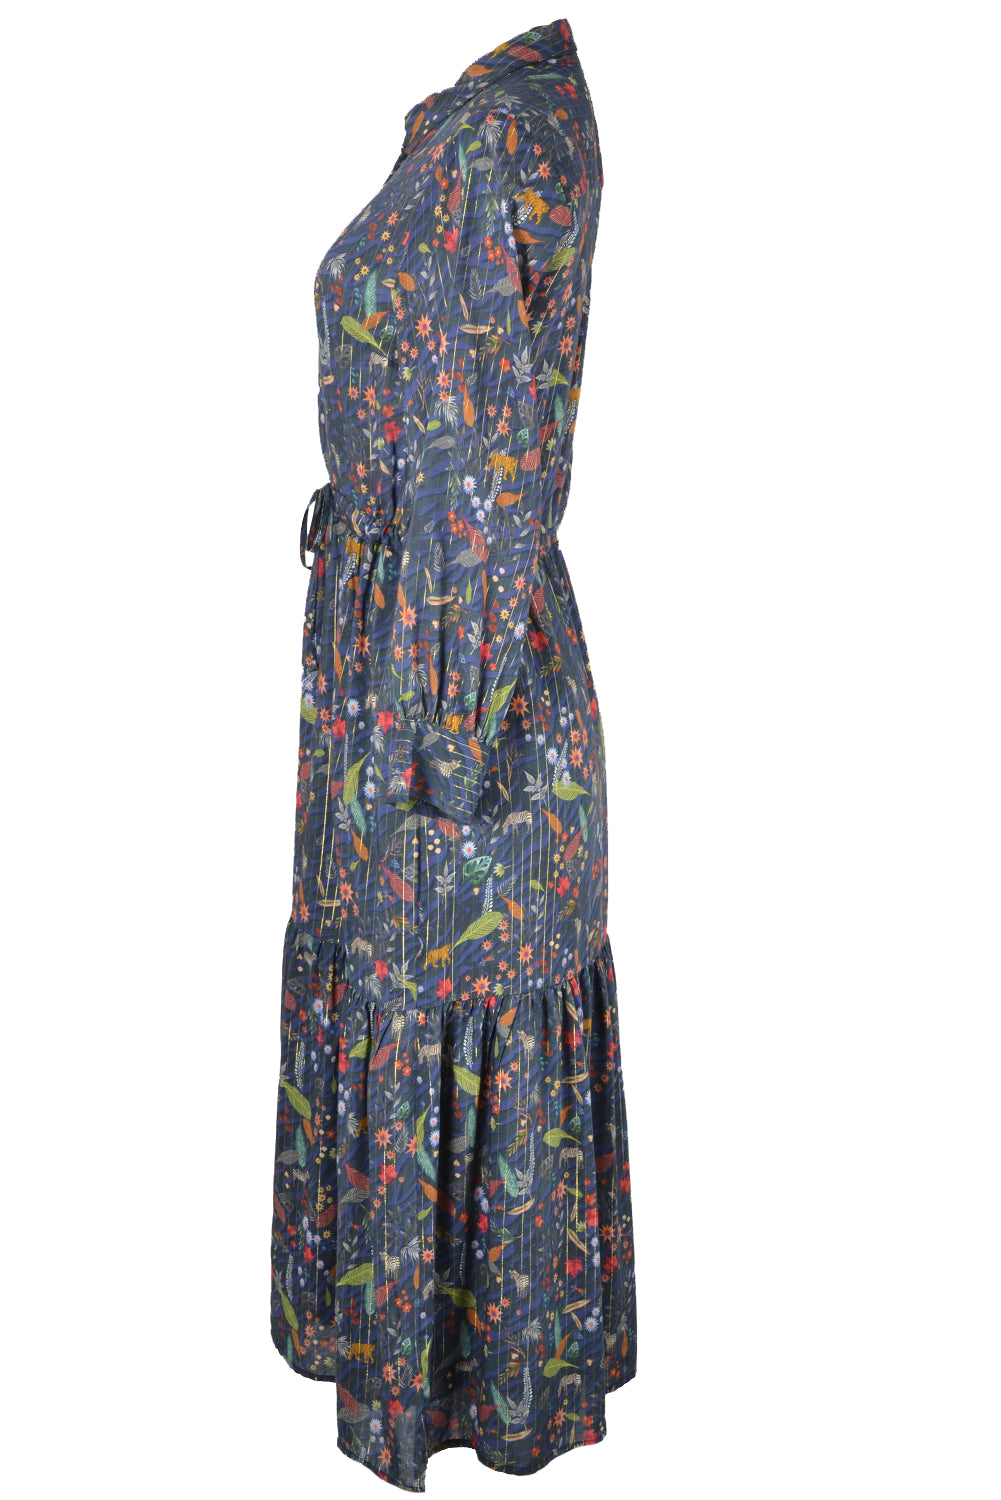 Vilagallo EVE Nocturnal Print Maxi Dress Dark Navy